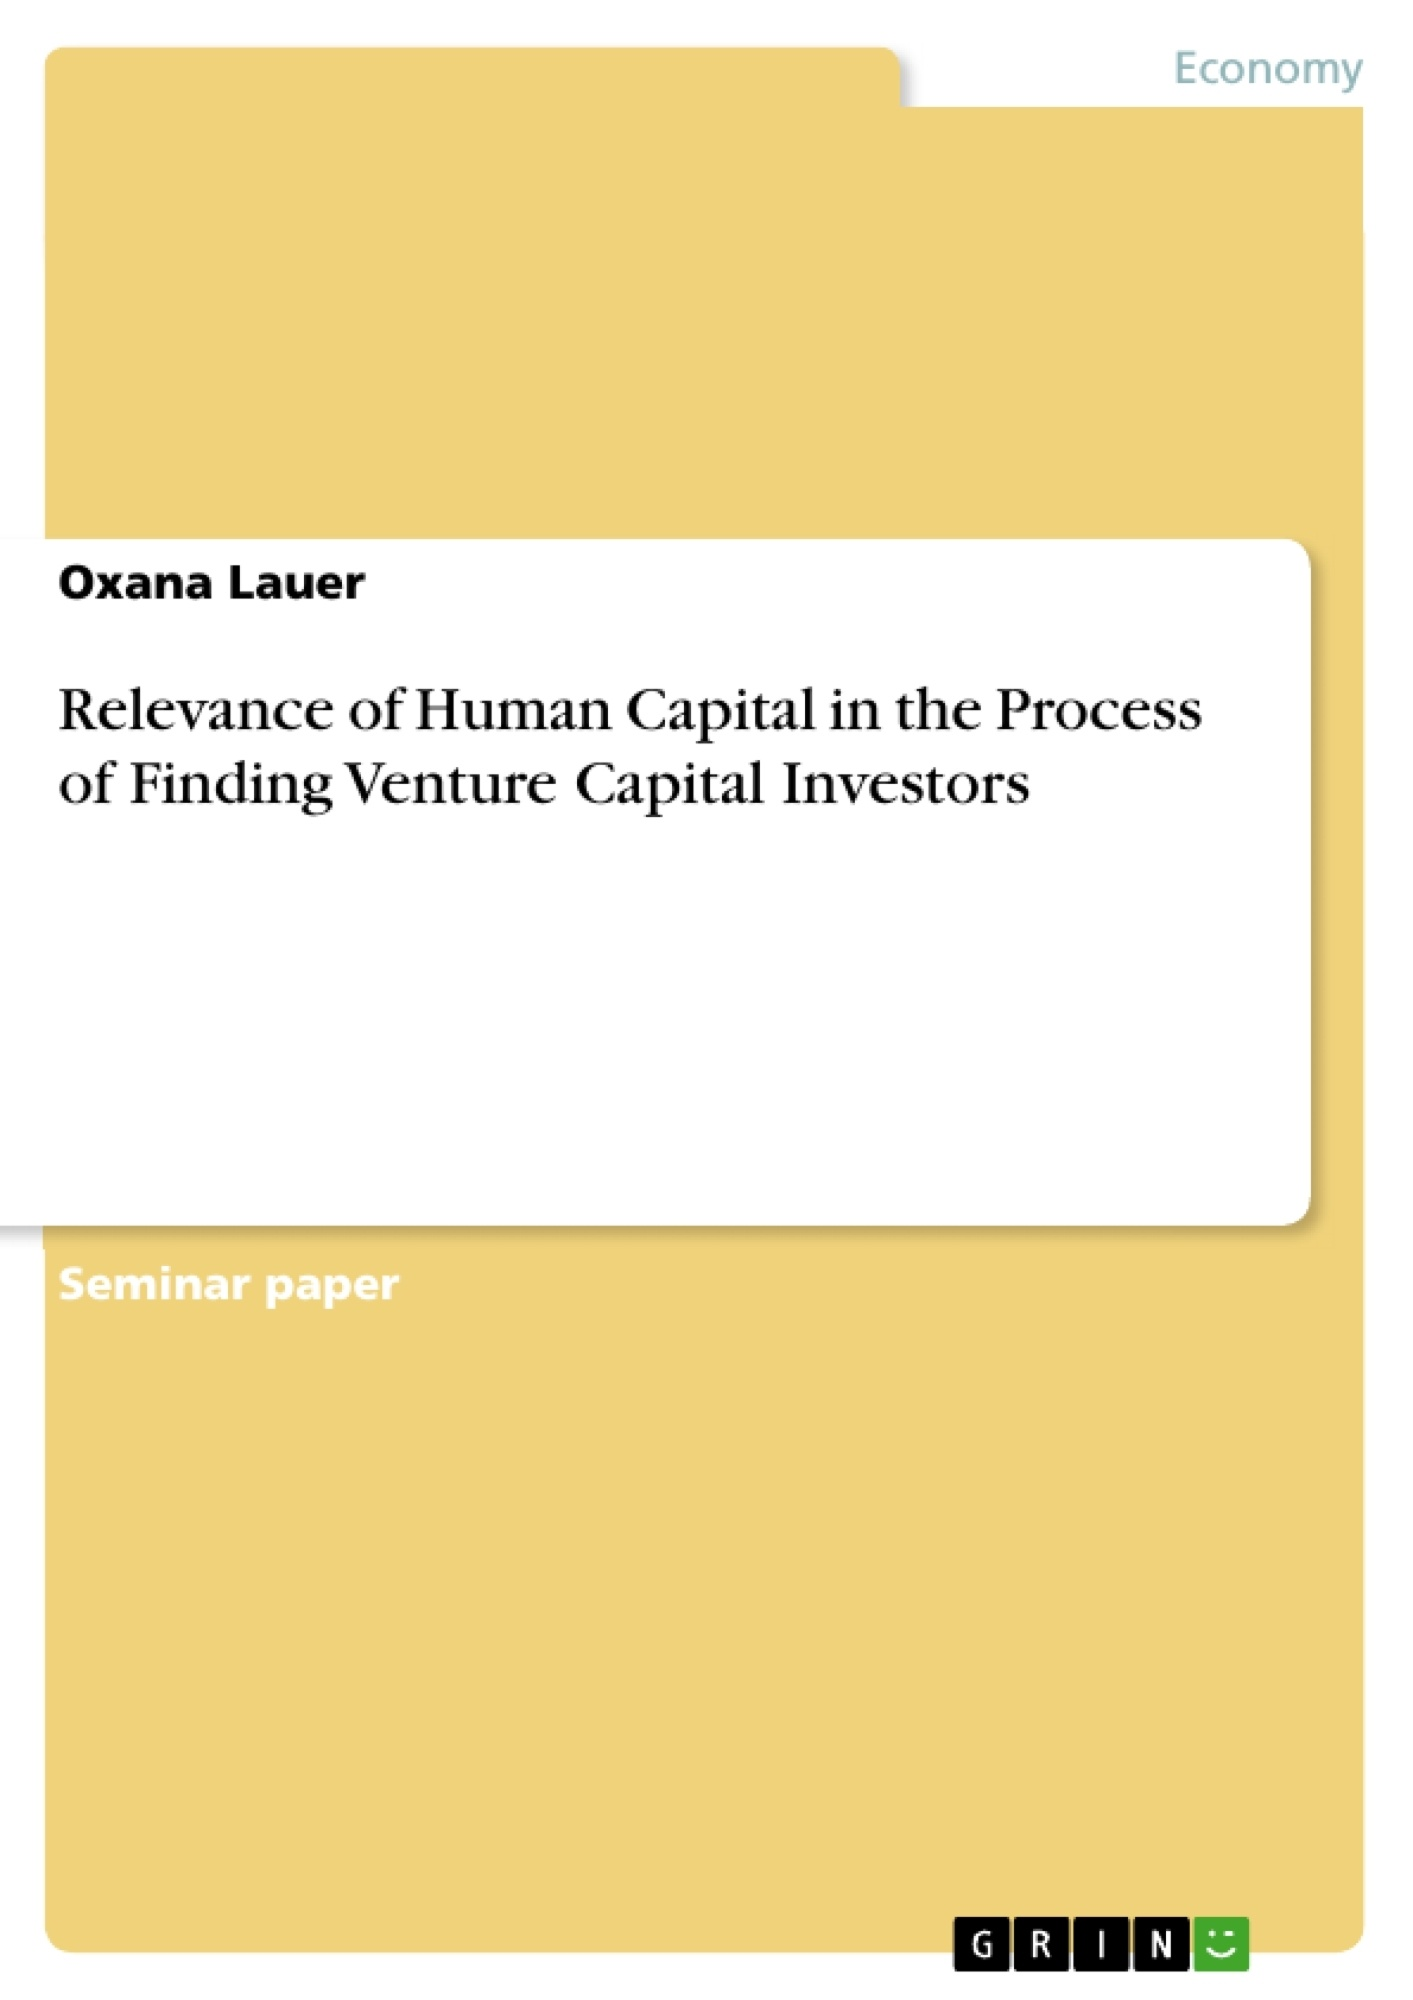 Title: Relevance of Human Capital in the Process of Finding Venture Capital Investors